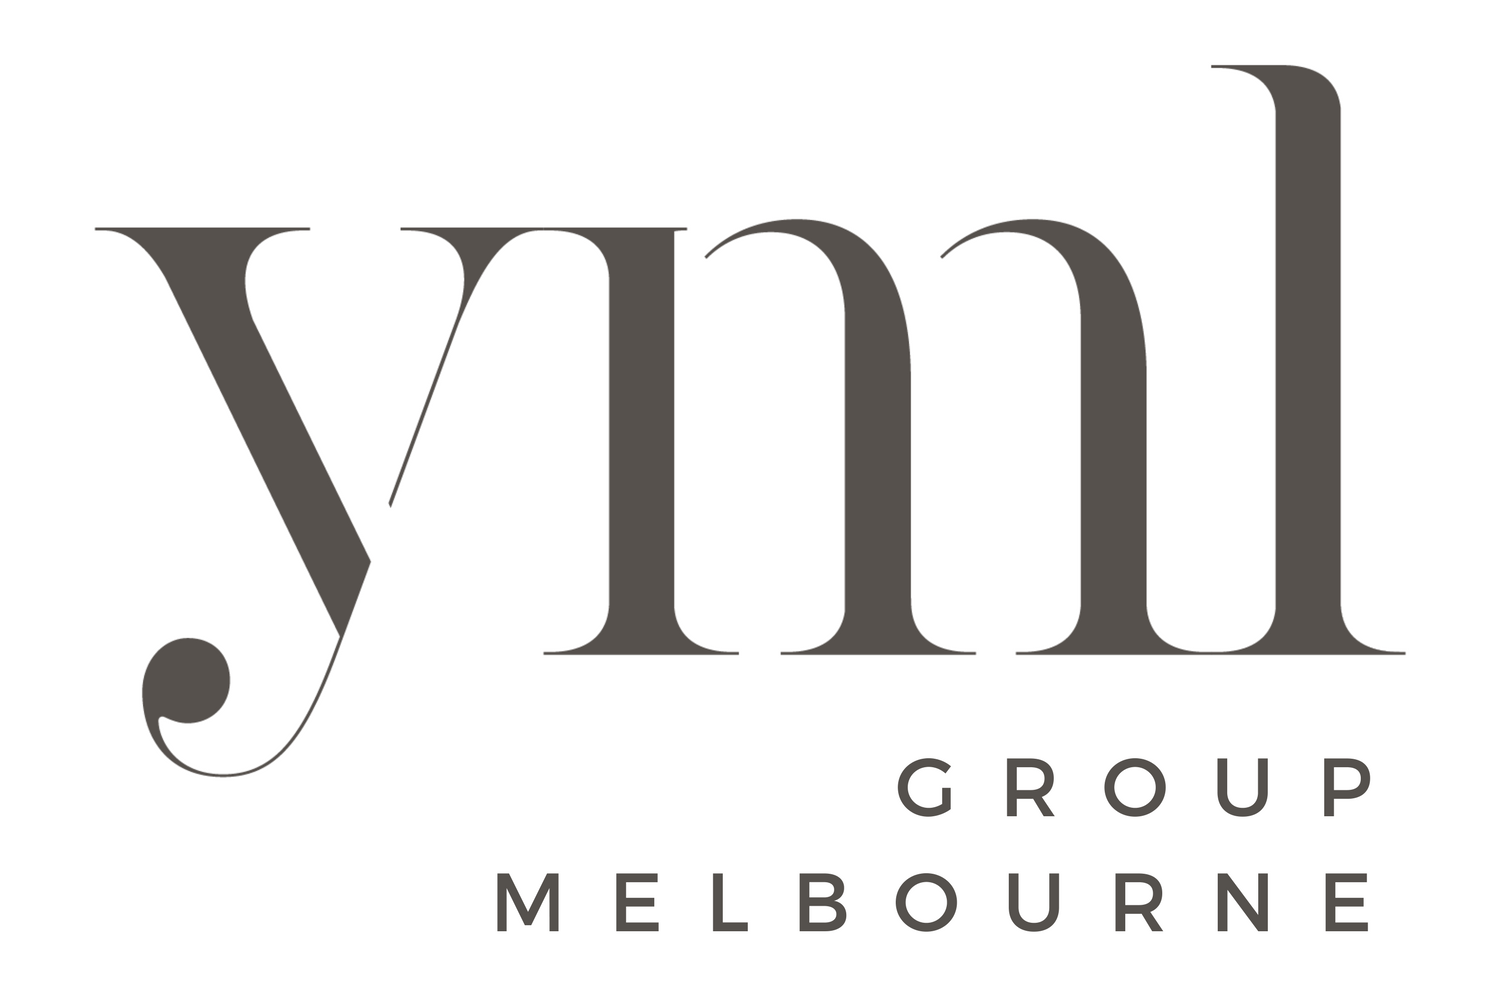 YML Group Melbourne